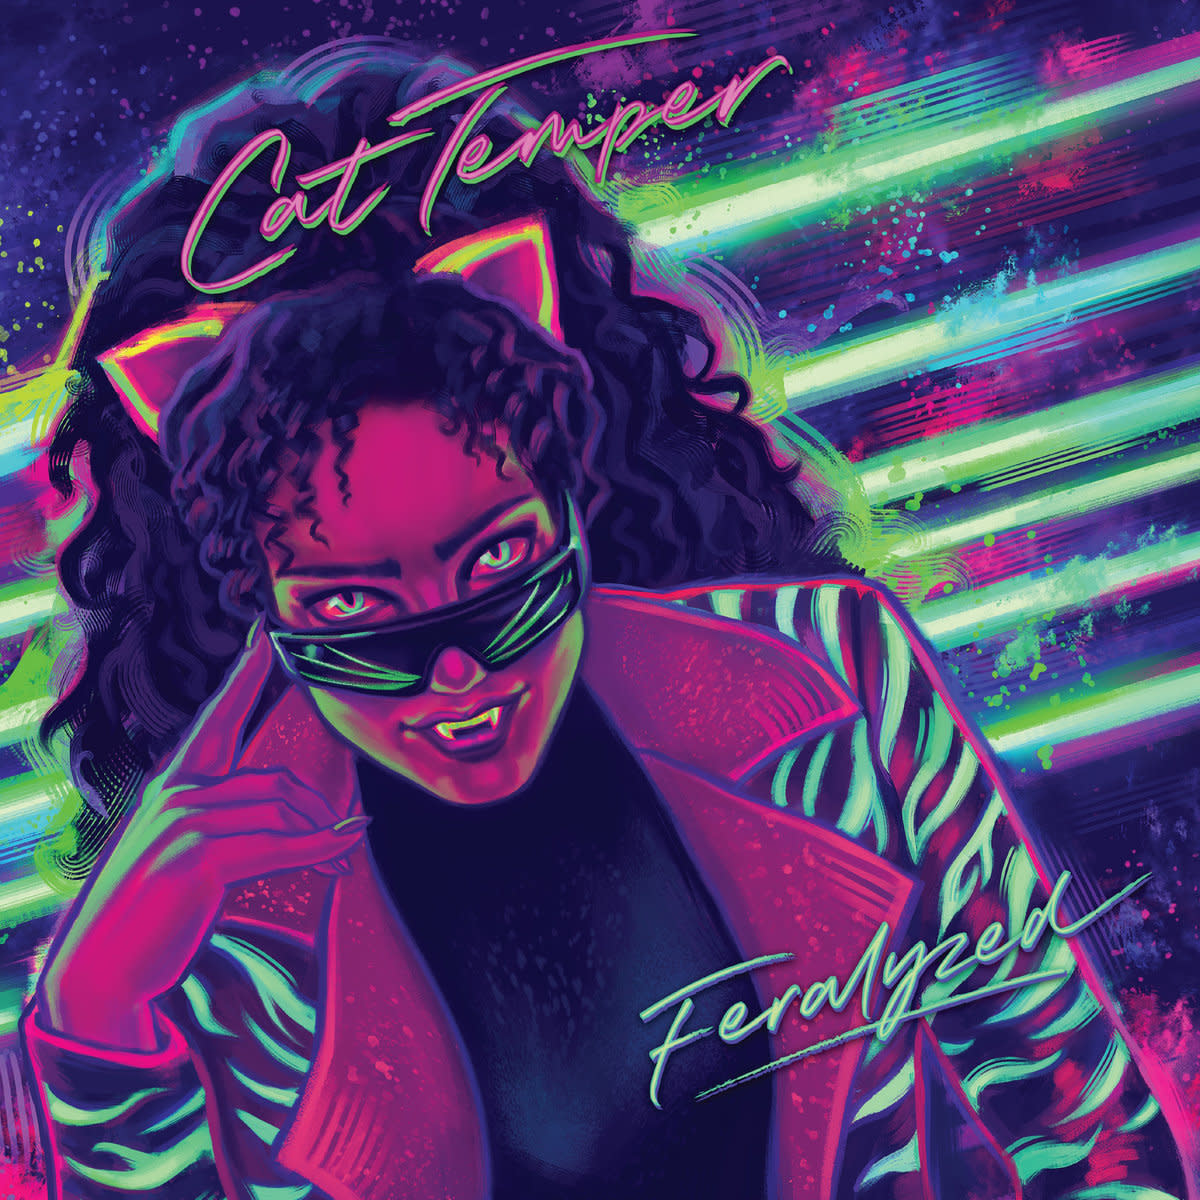 synth-album-review-feralyzed-by-cat-temper